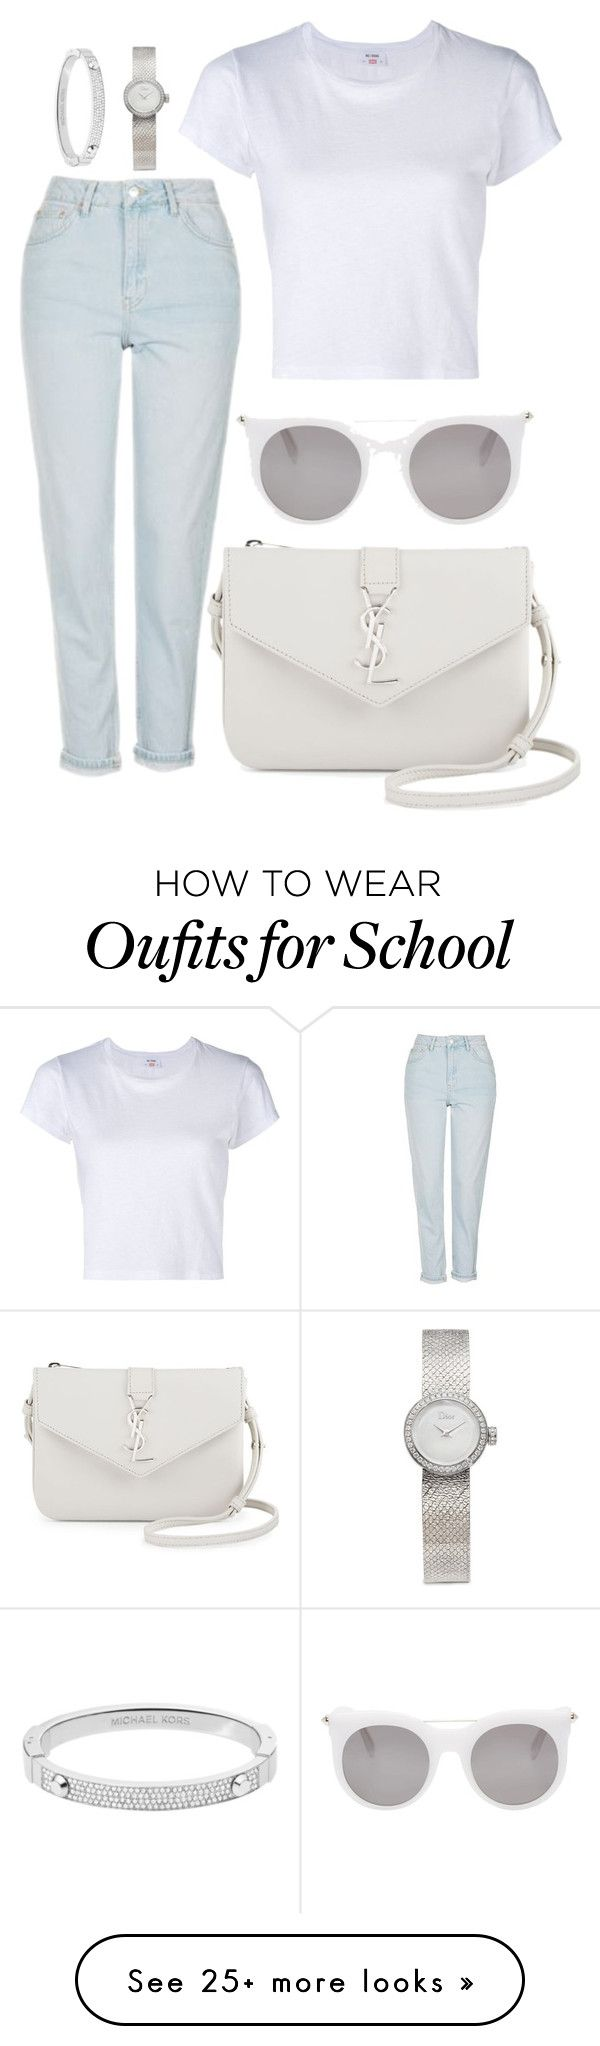 """Back 2 school"" by natysdvd on Polyvore featuring RE/DONE, Topshop, Yves Saint Laurent, Alexander McQueen, Michael Kors and Christian Dior"